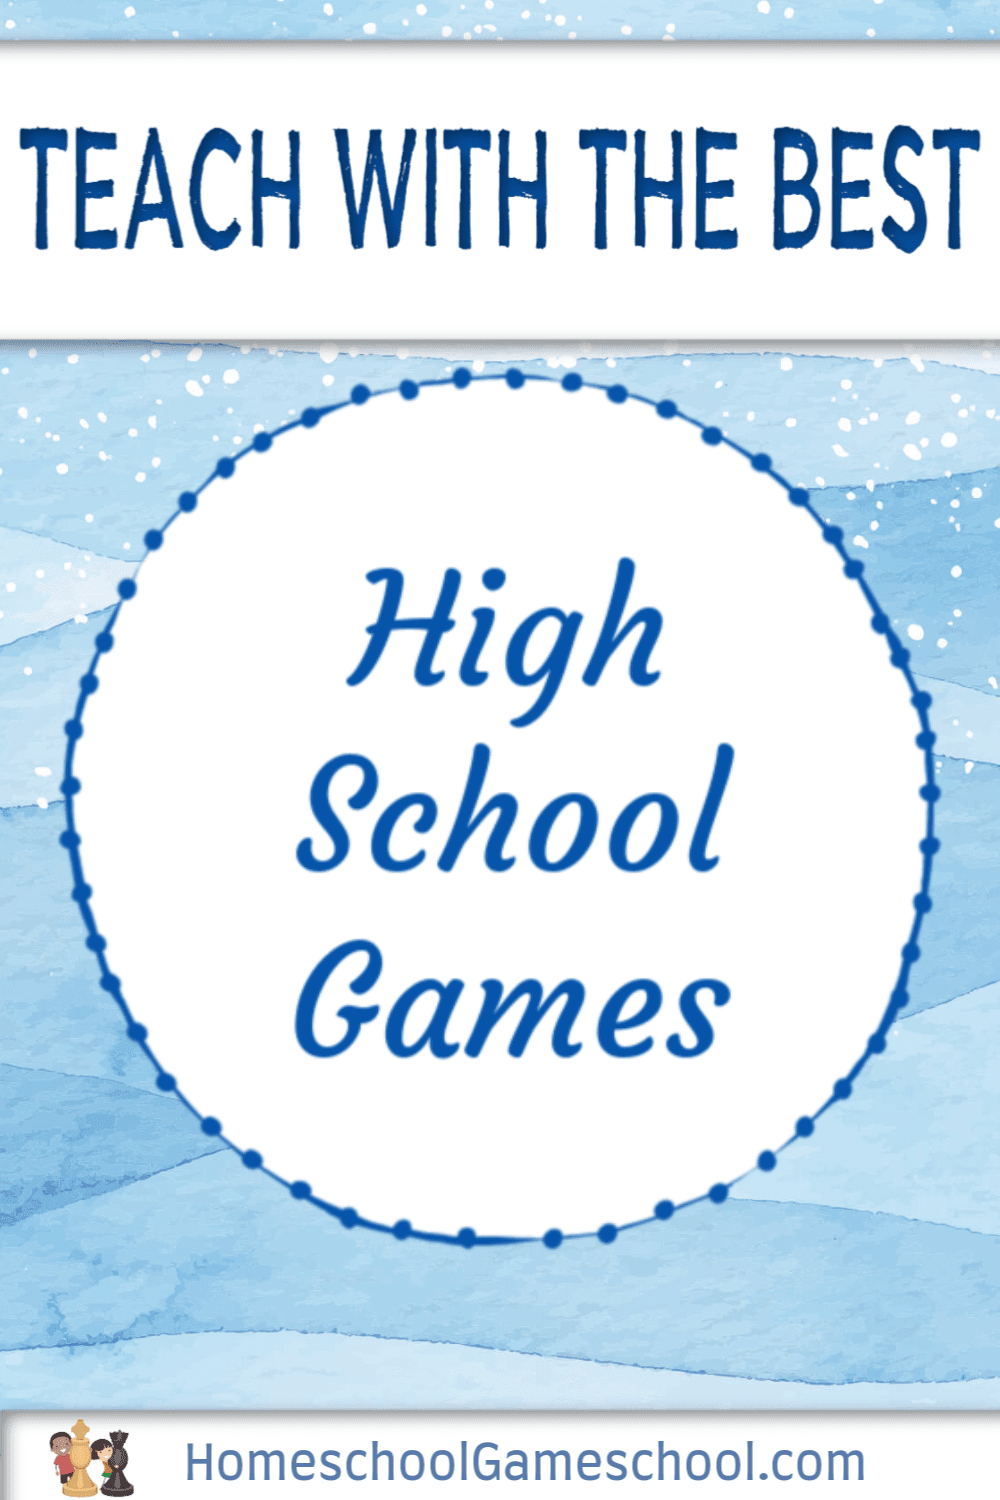 Games for High School